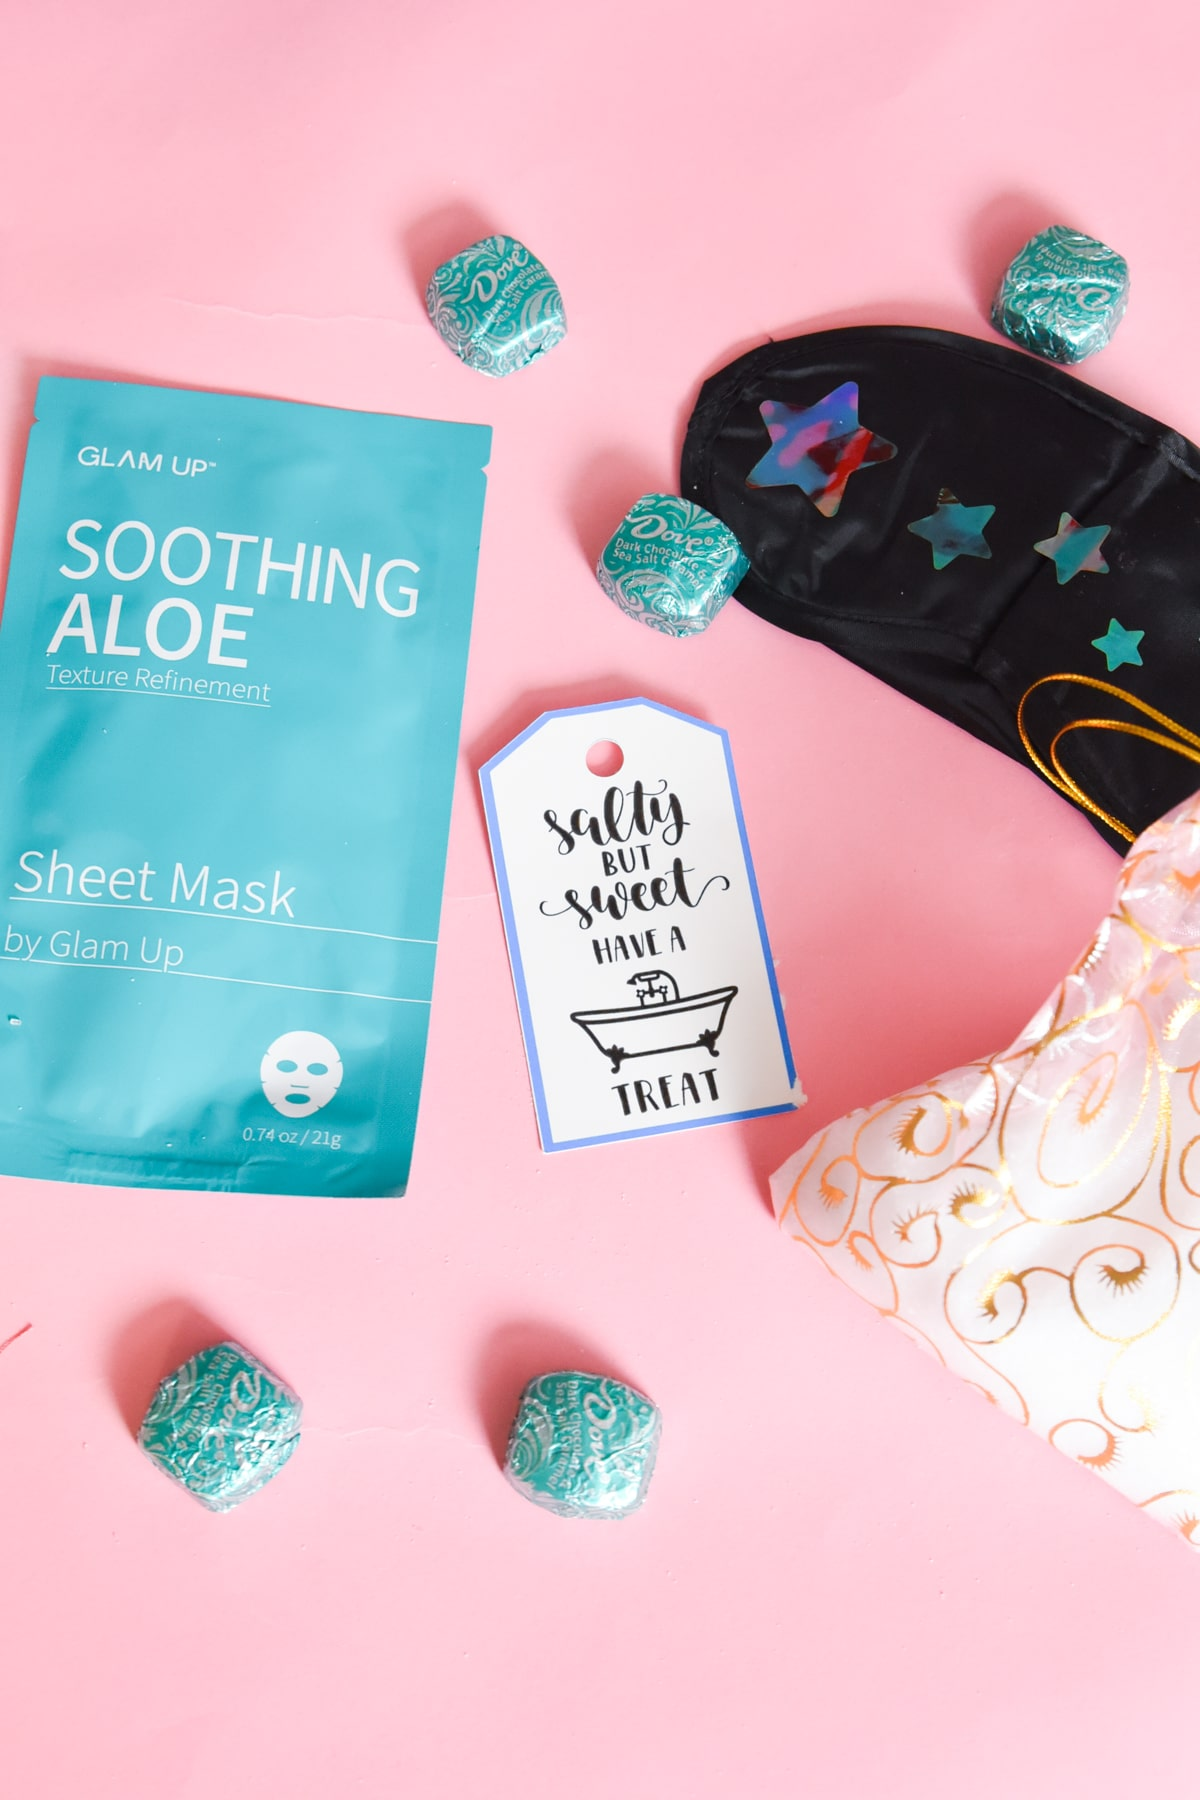 face mask, sleep mask, and candy